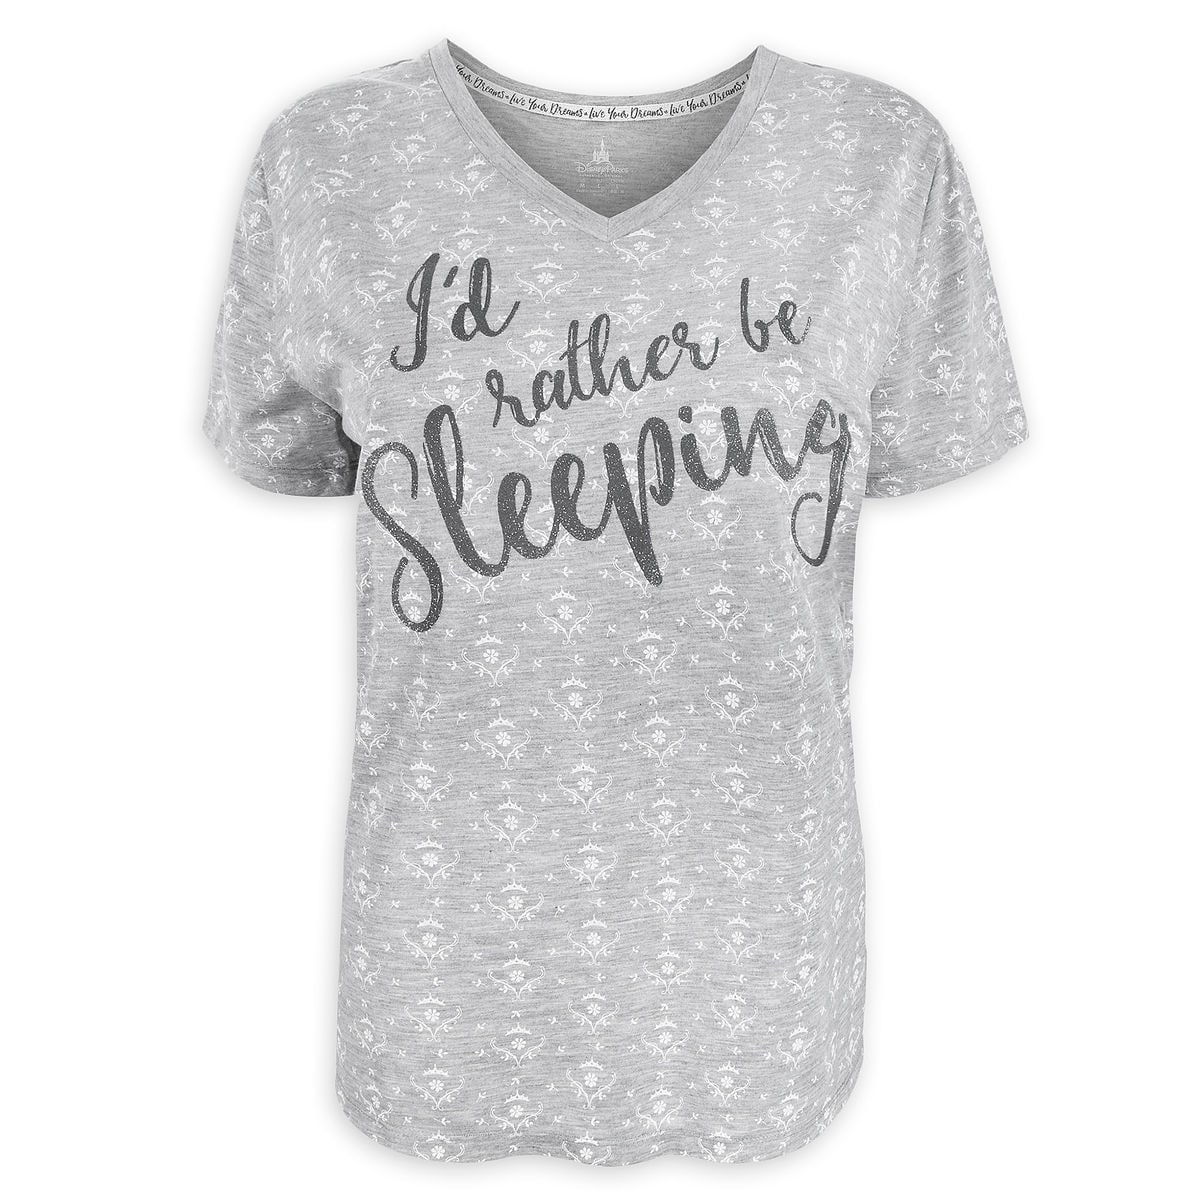 Product Image of Aurora Text T-Shirt for Women - Sleeping Beauty   1 f1b18497e4